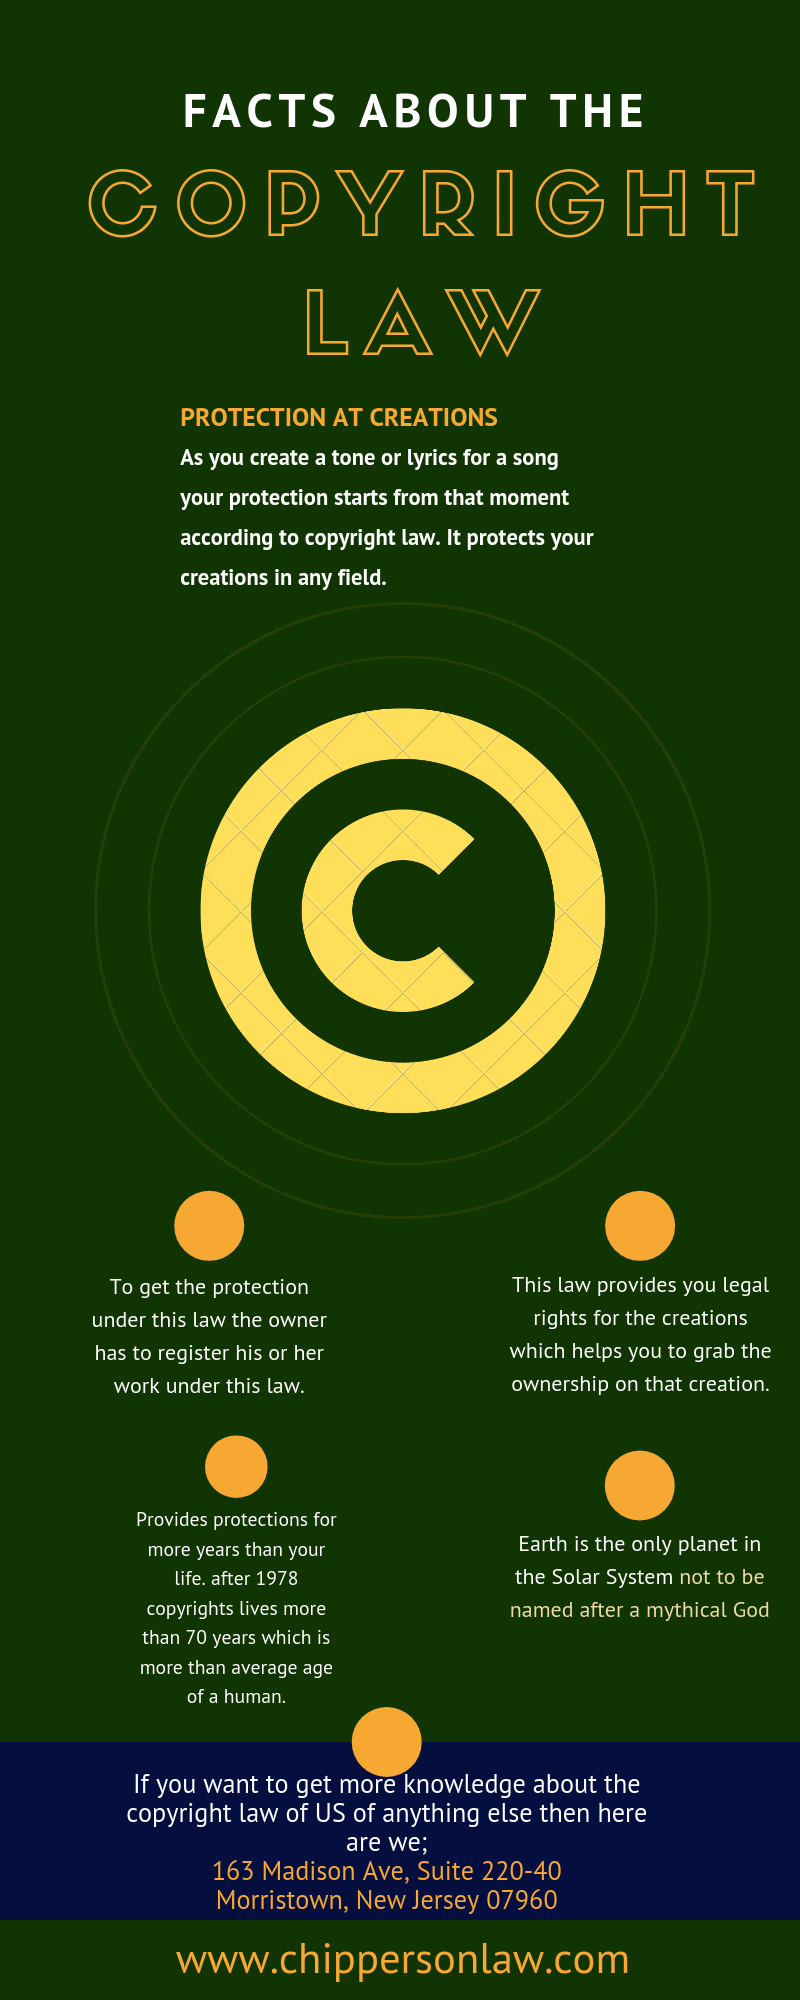 Facts About The Copyright Law Copyright Laws Law Law Firm